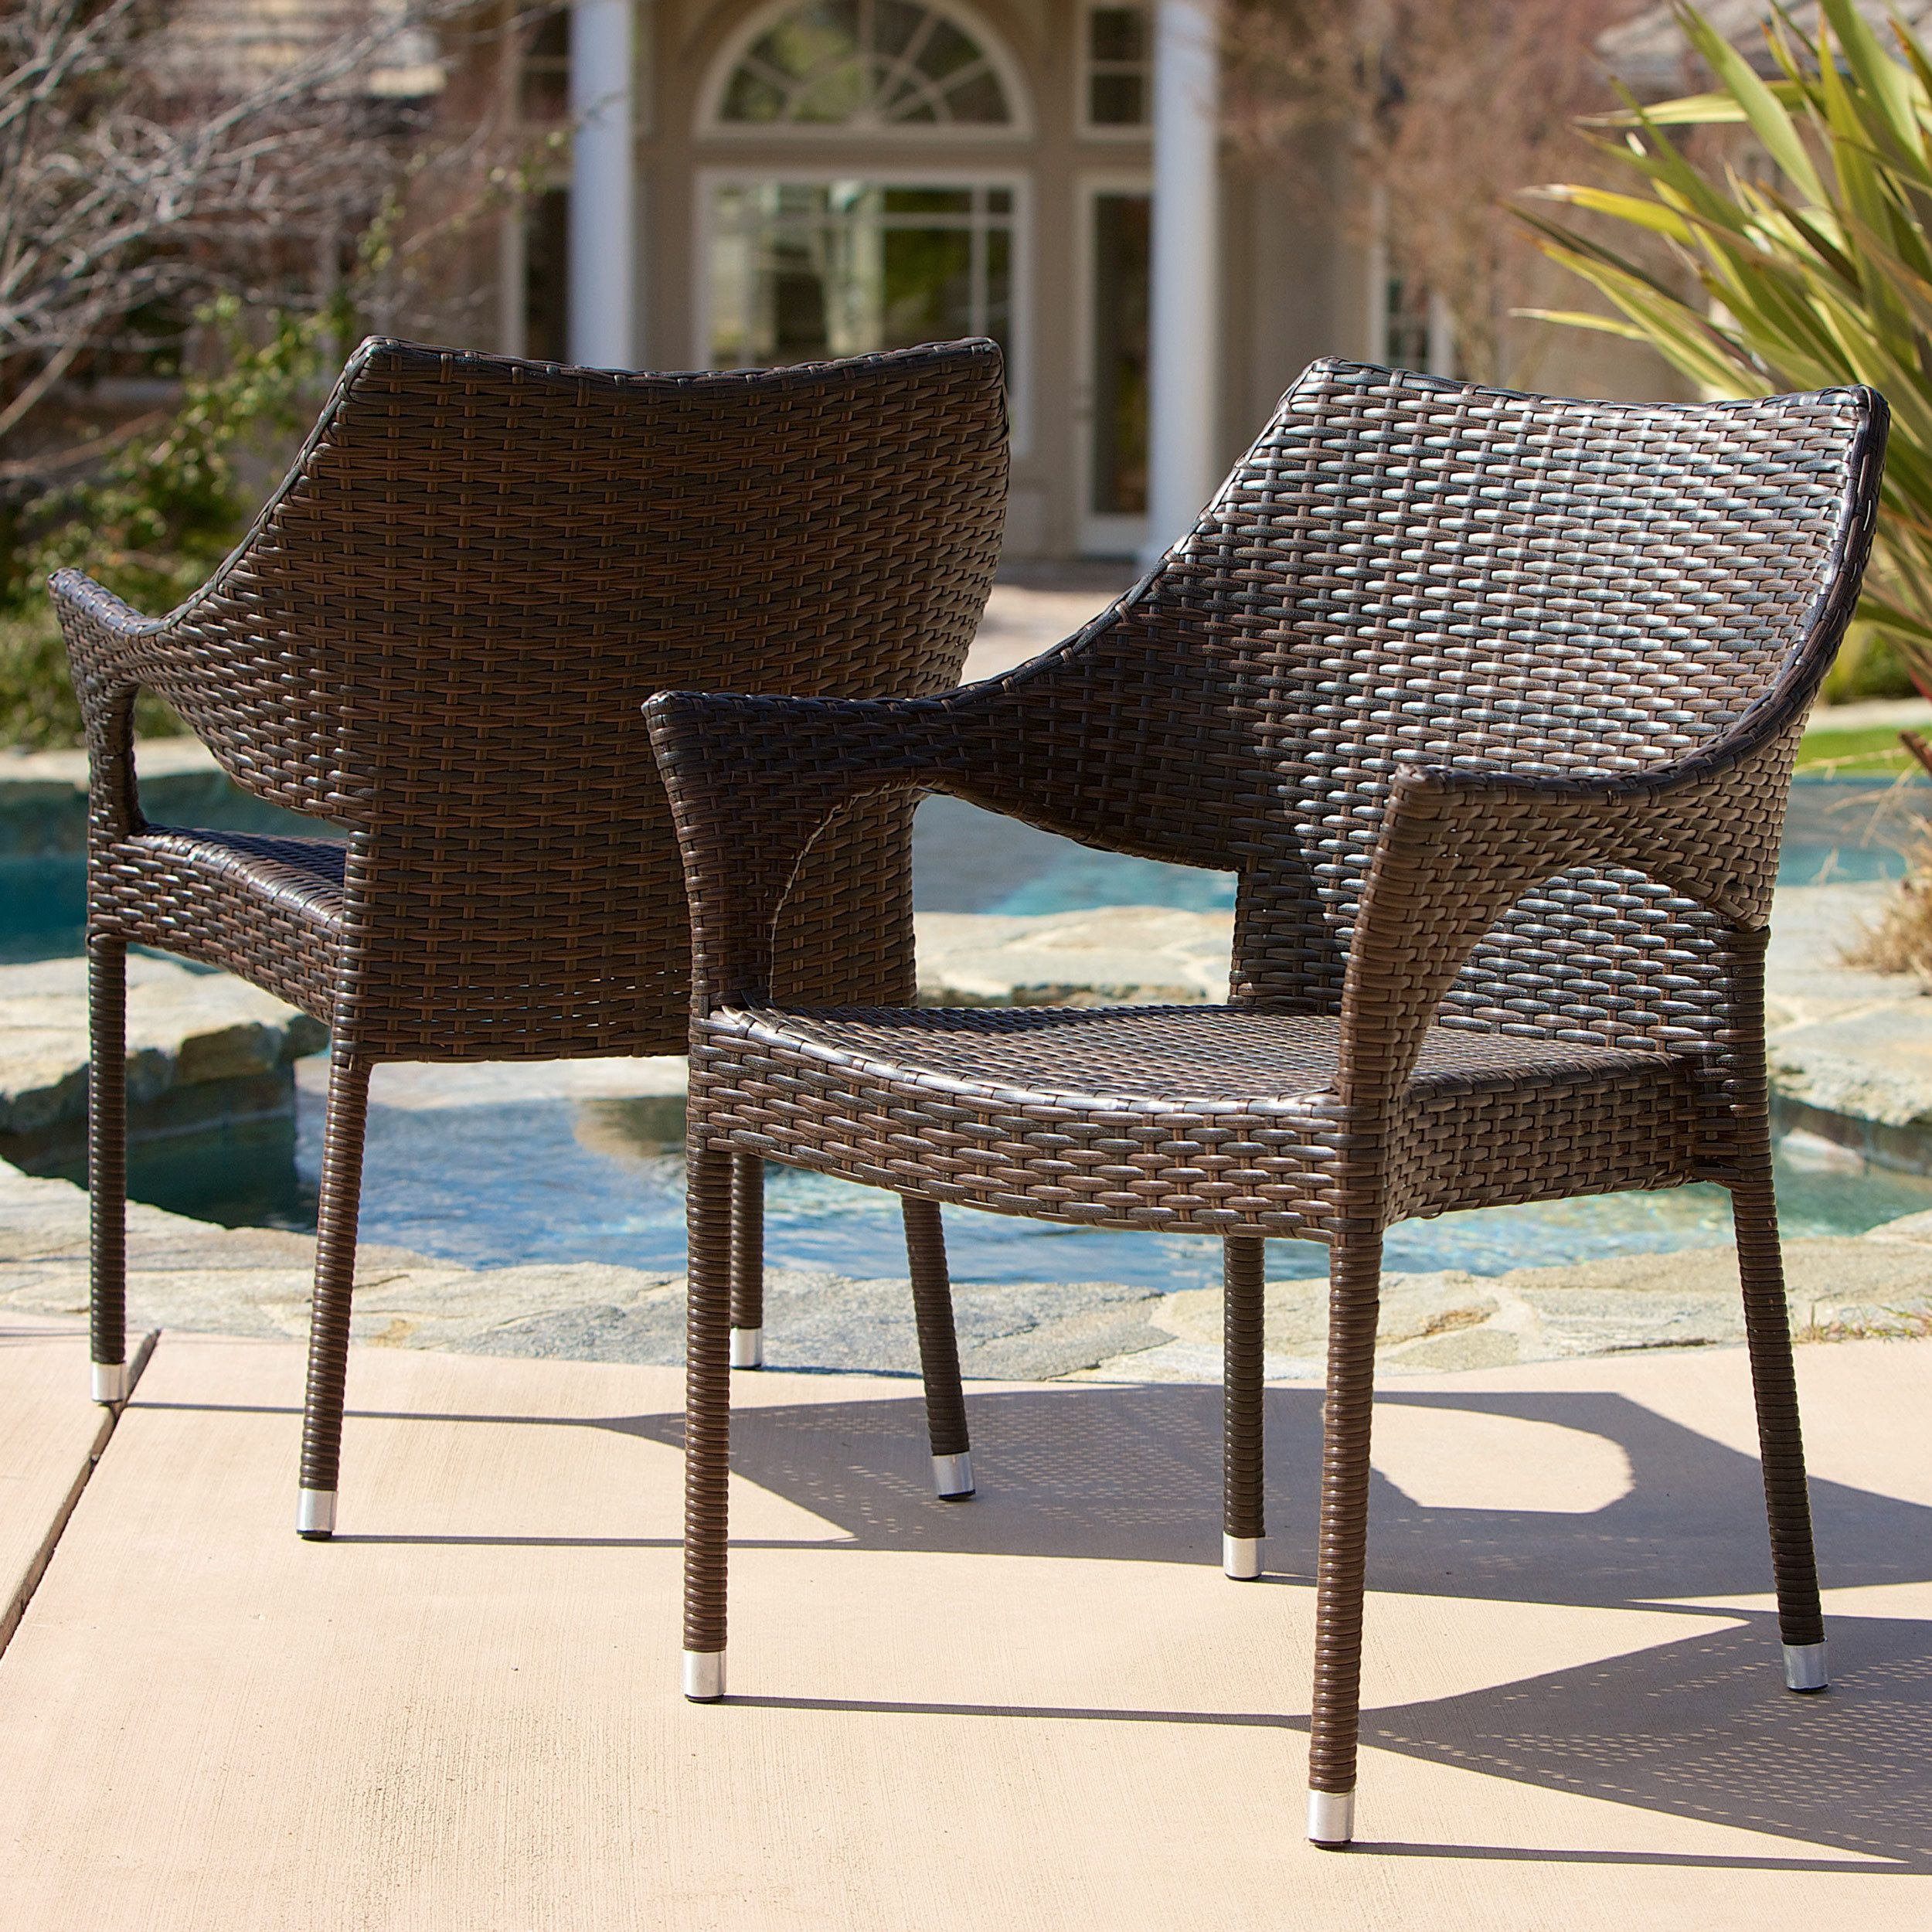 100 Best Chairs Rattan Sintetis Images Outdoor Furniture Sets Rattan Outdoor Furniture